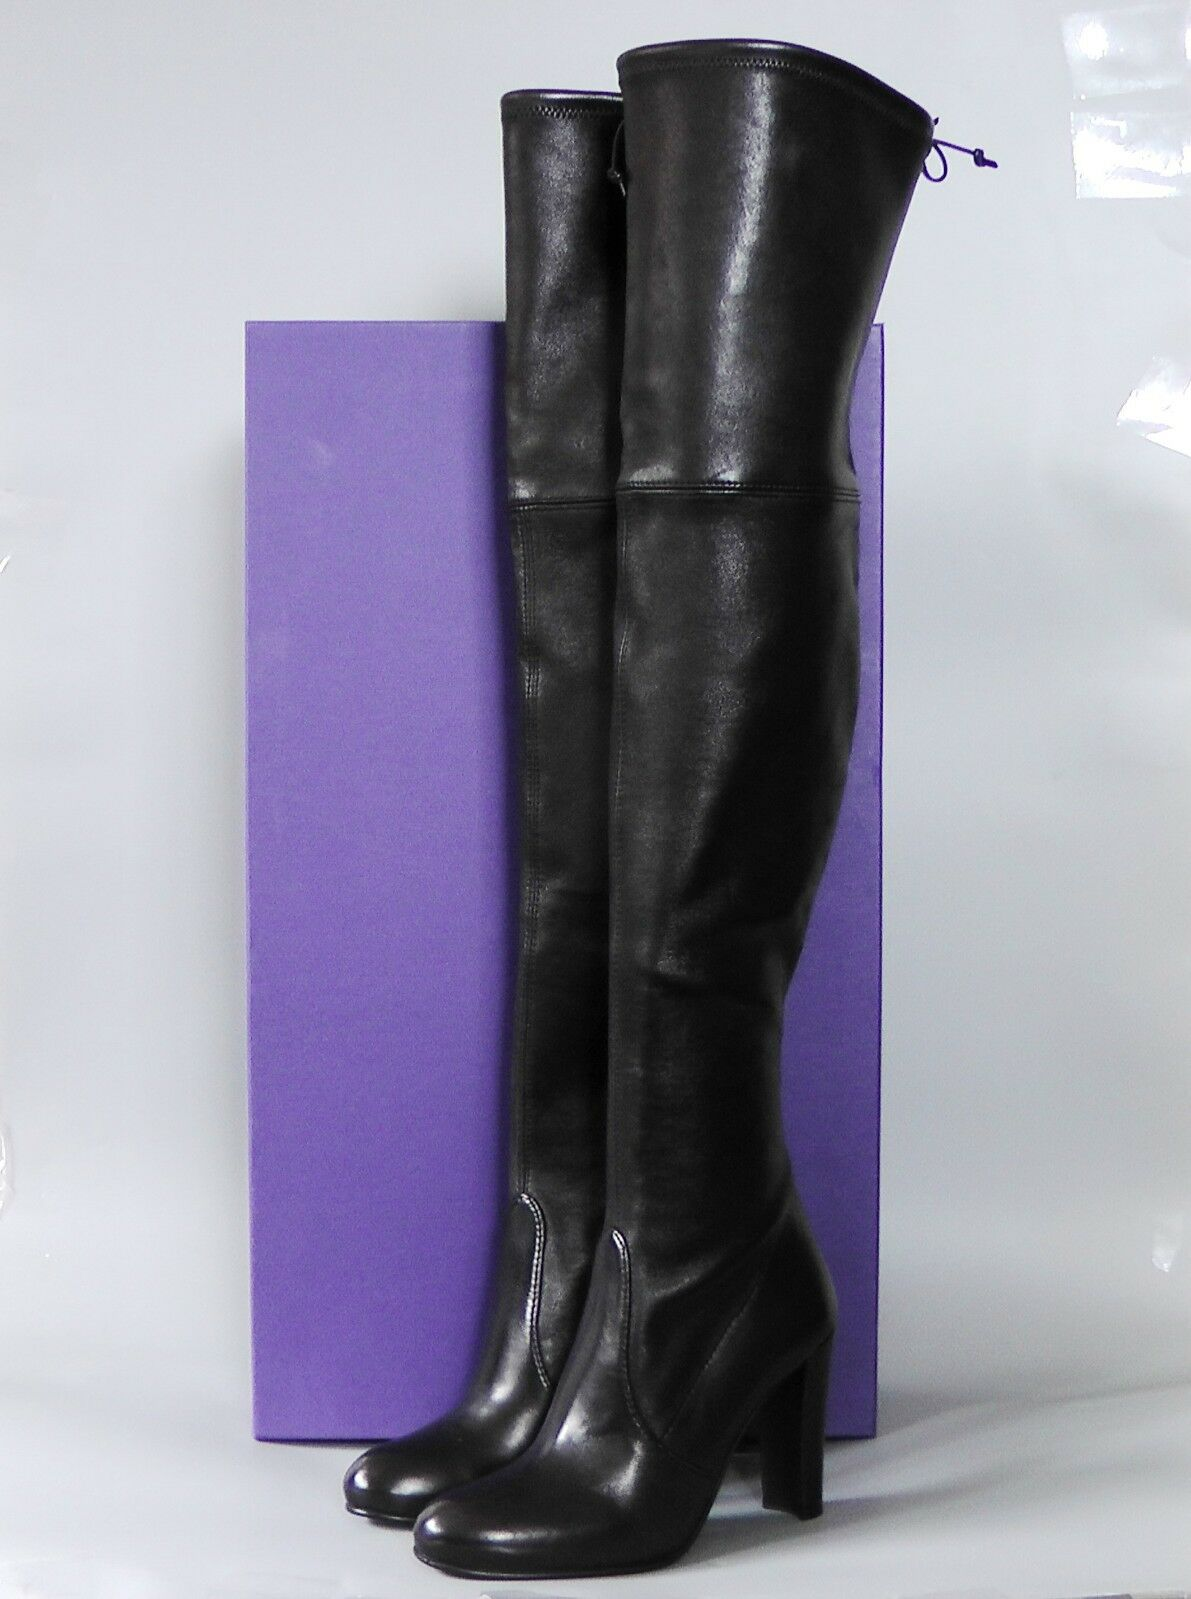 fabbrica diretta NEW Stuart Weitzman Highland Over-the-Knee stivali Shoe, Shoe, Shoe, nero Leather, 5M,  875  economico e alla moda